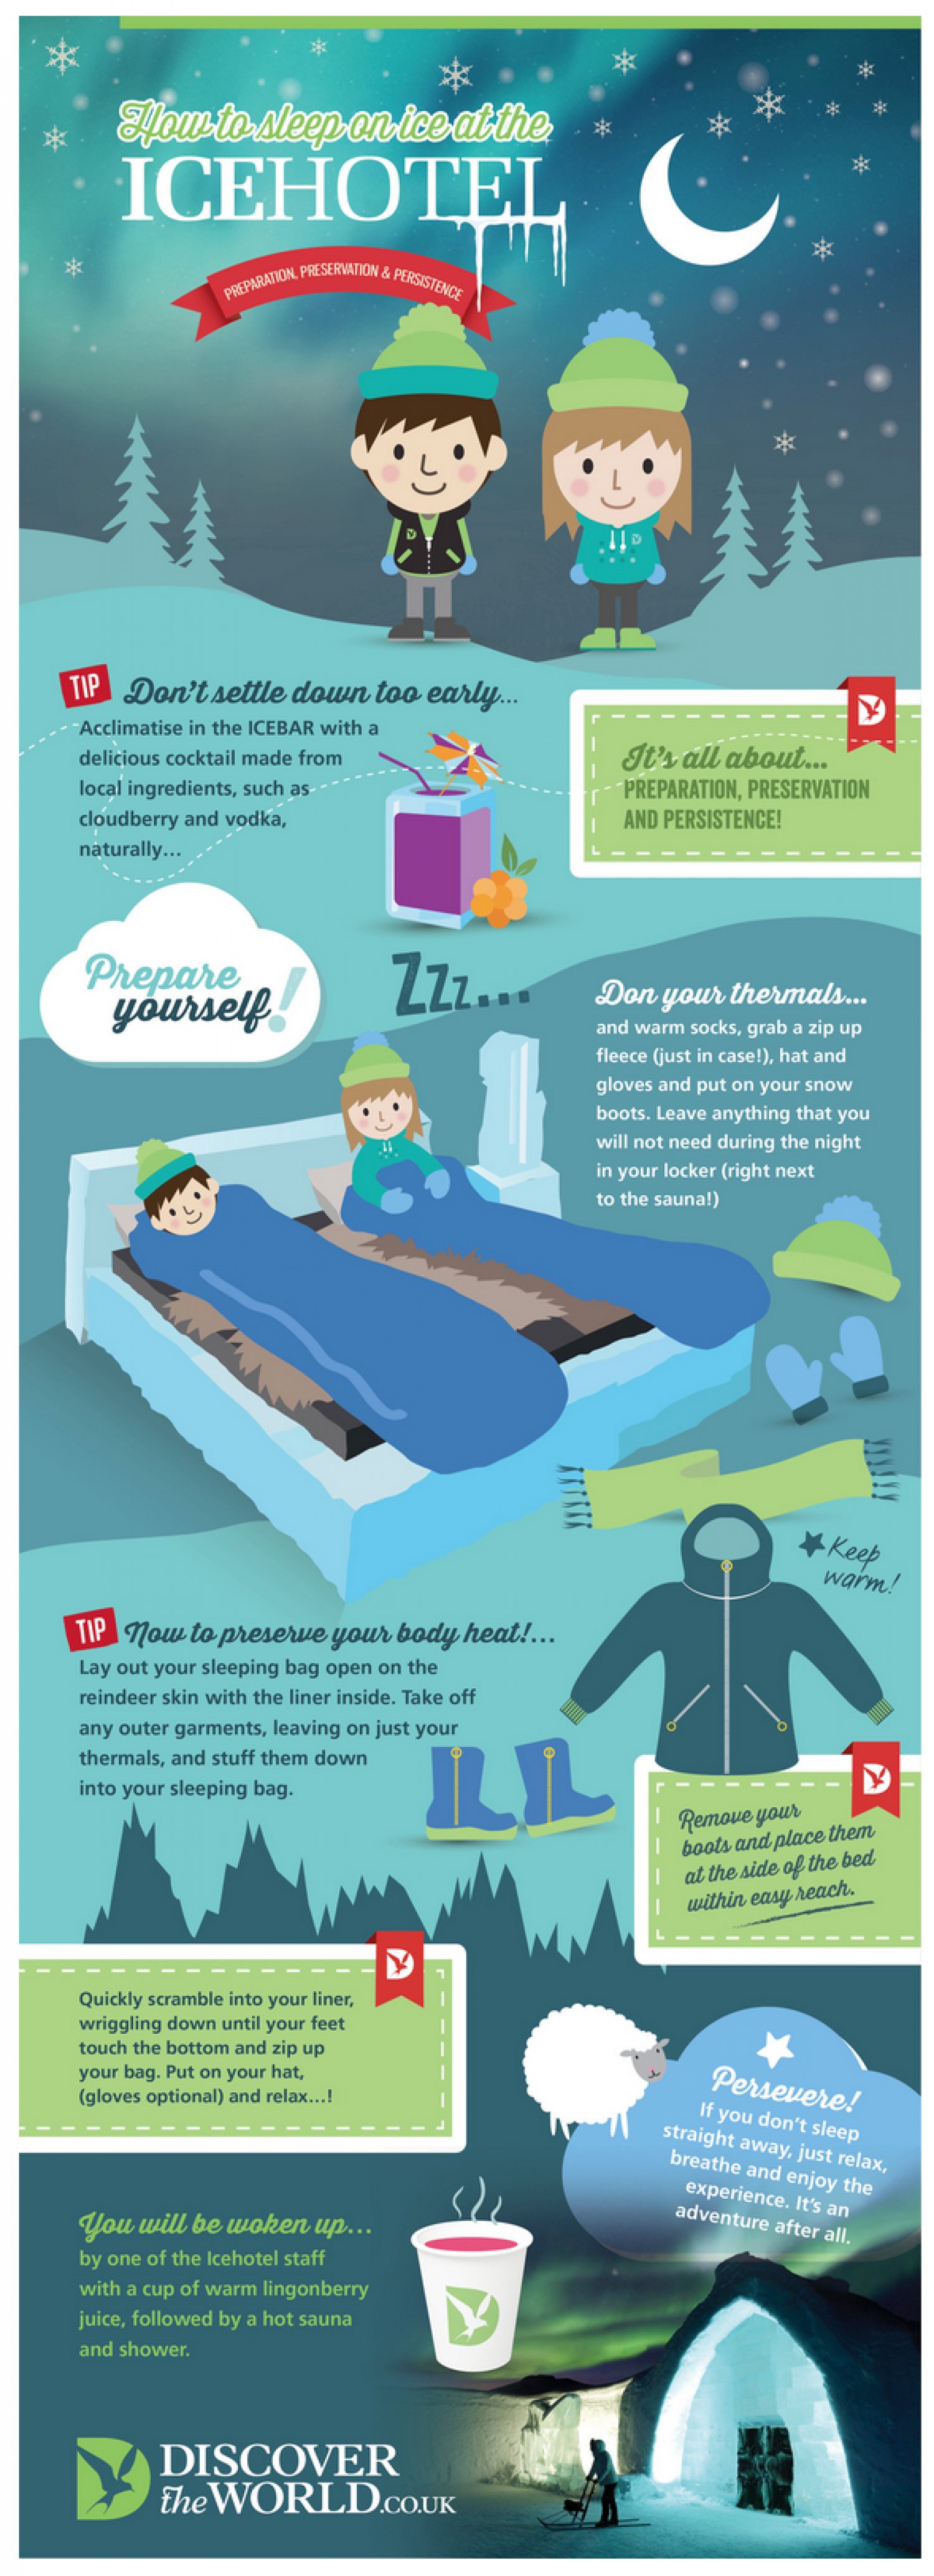 How to sleep on ice at the Icehotel Infographic